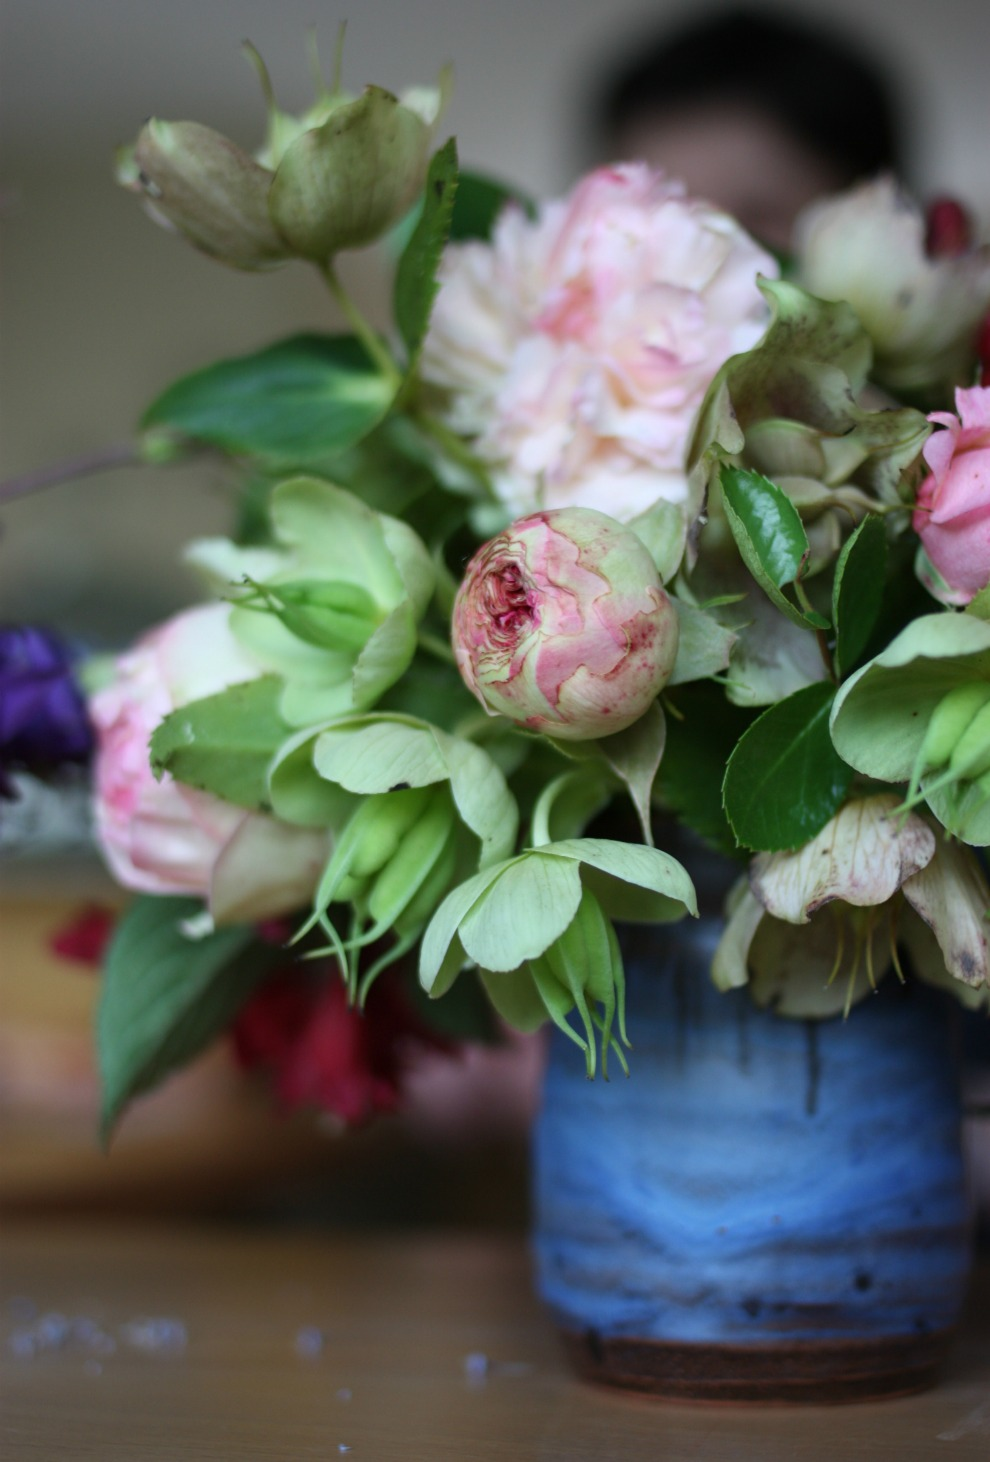 roses-and-green-hellebores.jpg